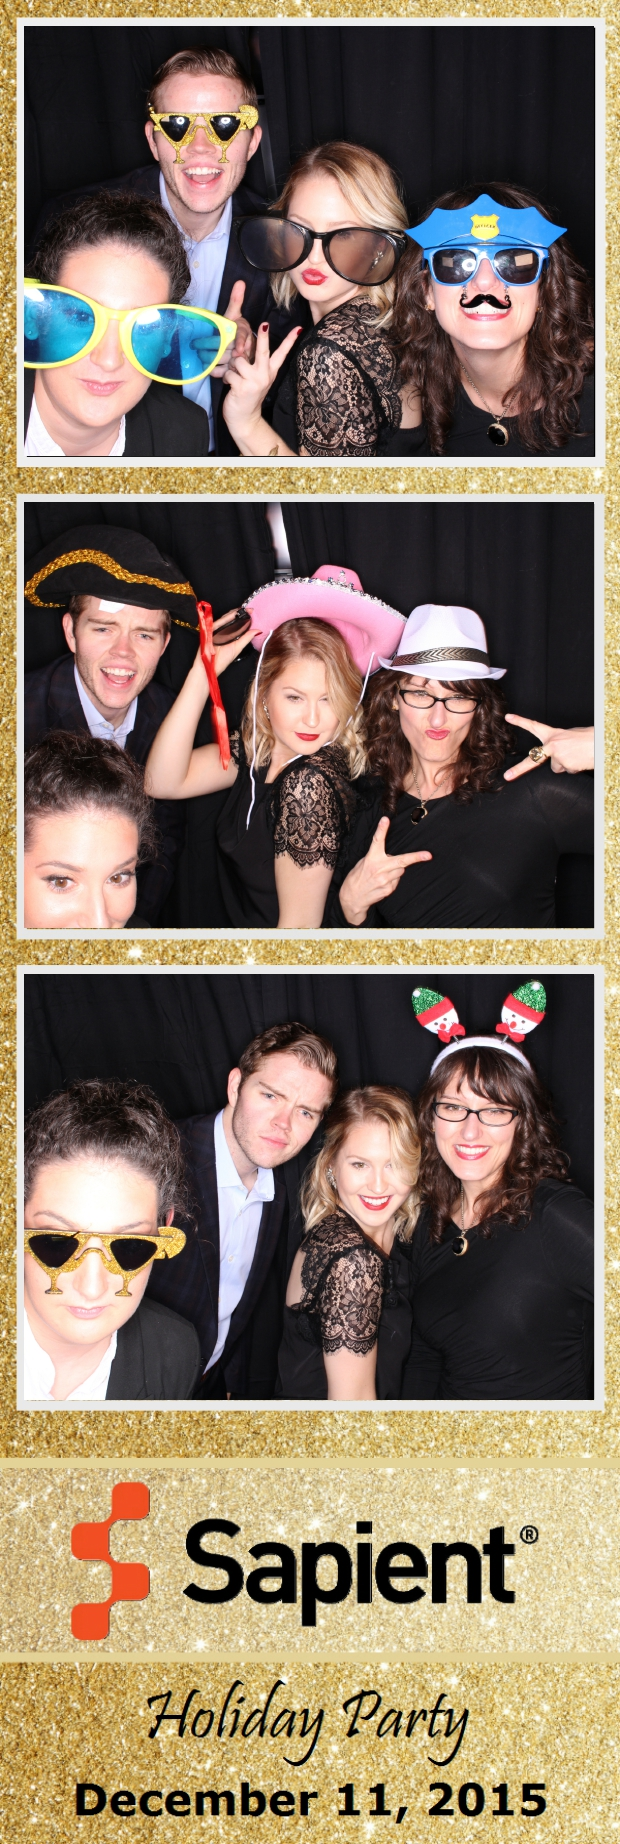 Guest House Events Photo Booth Sapient Holiday Party (30).jpg